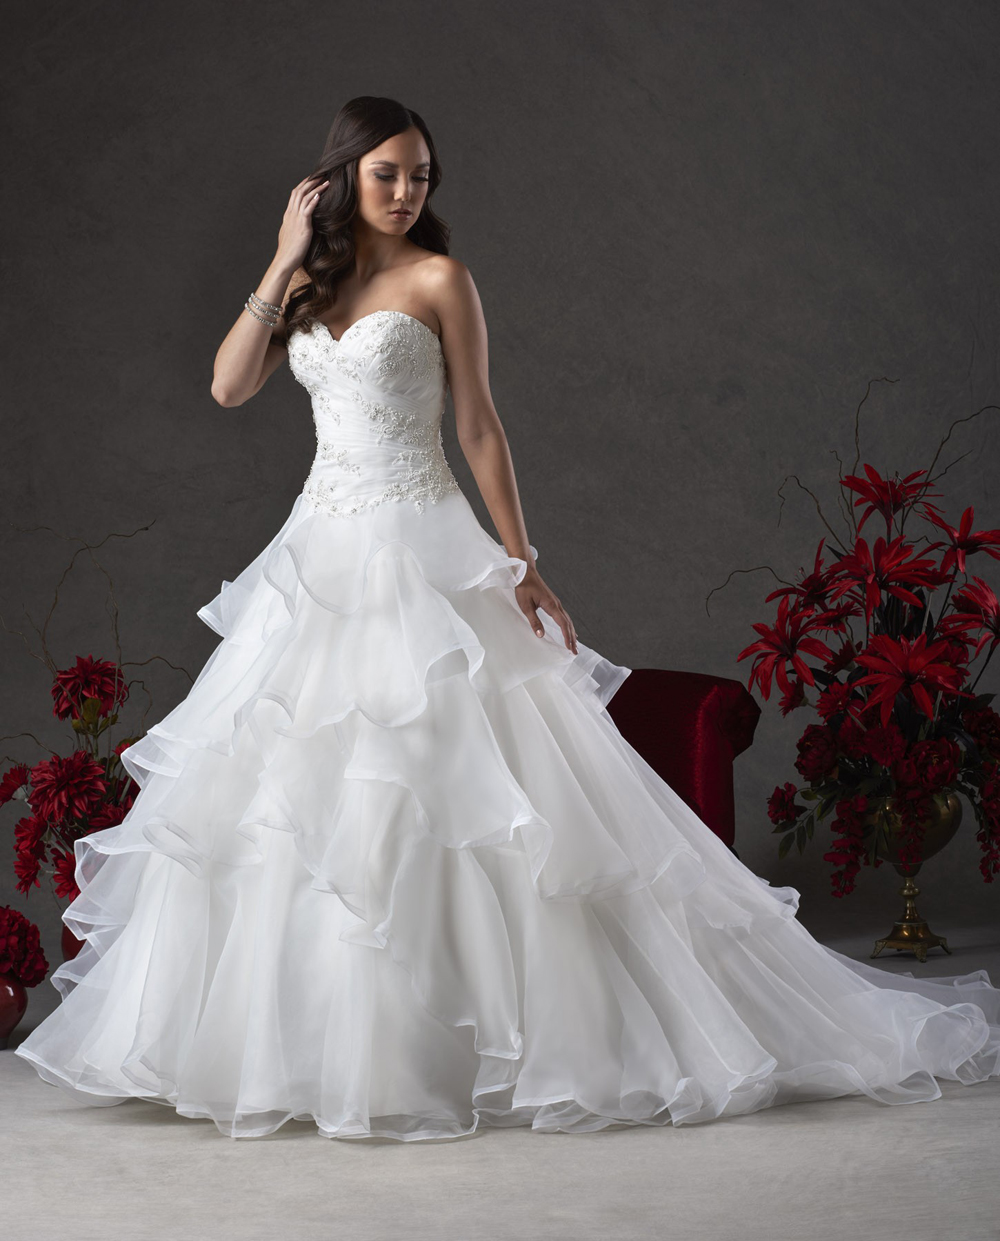 Sweetheart Lace Wedding Dress: New Tiered Appliques Wedding Dress Elegant Sweetheart Lace